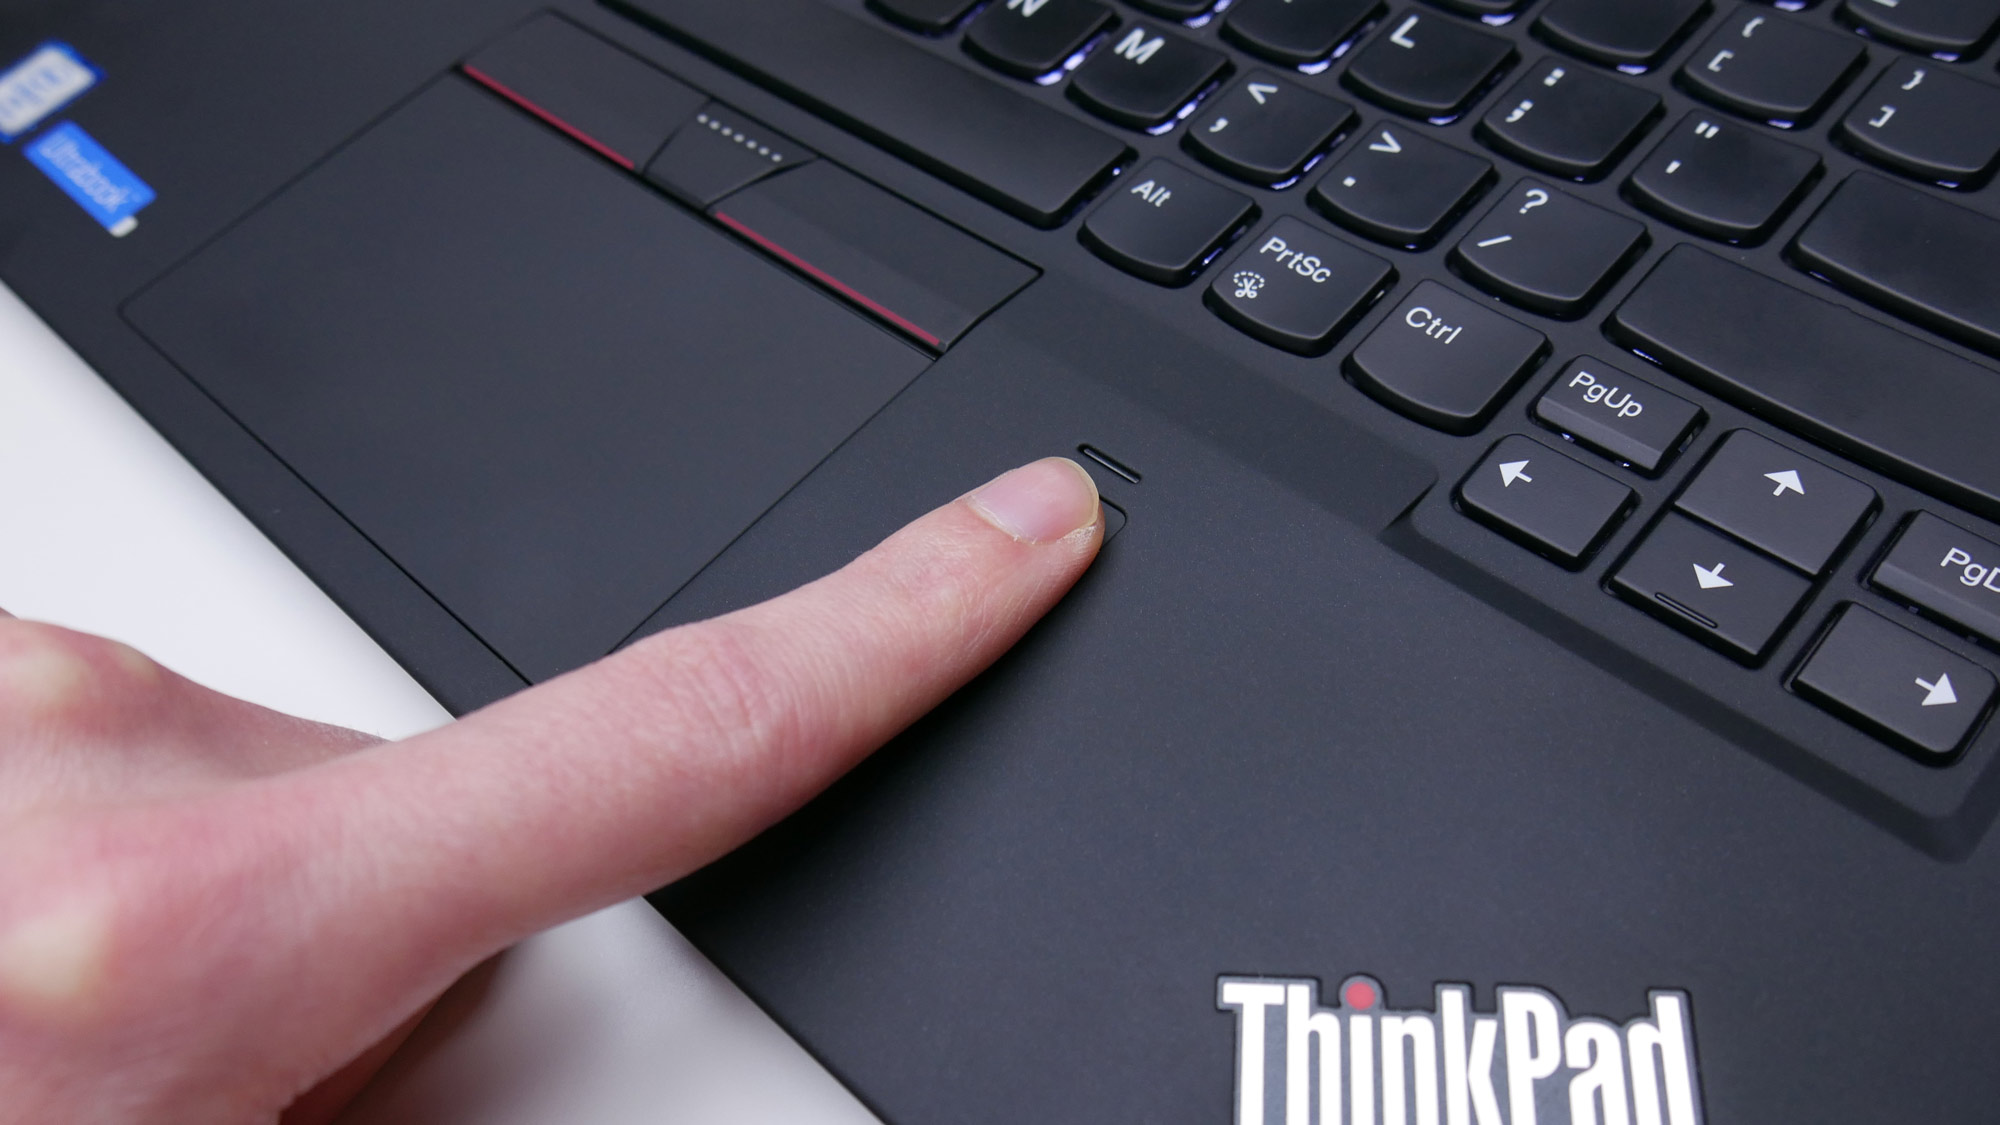 LENOVO THINKSTATION P300 FINGERPRINT DRIVERS WINDOWS XP